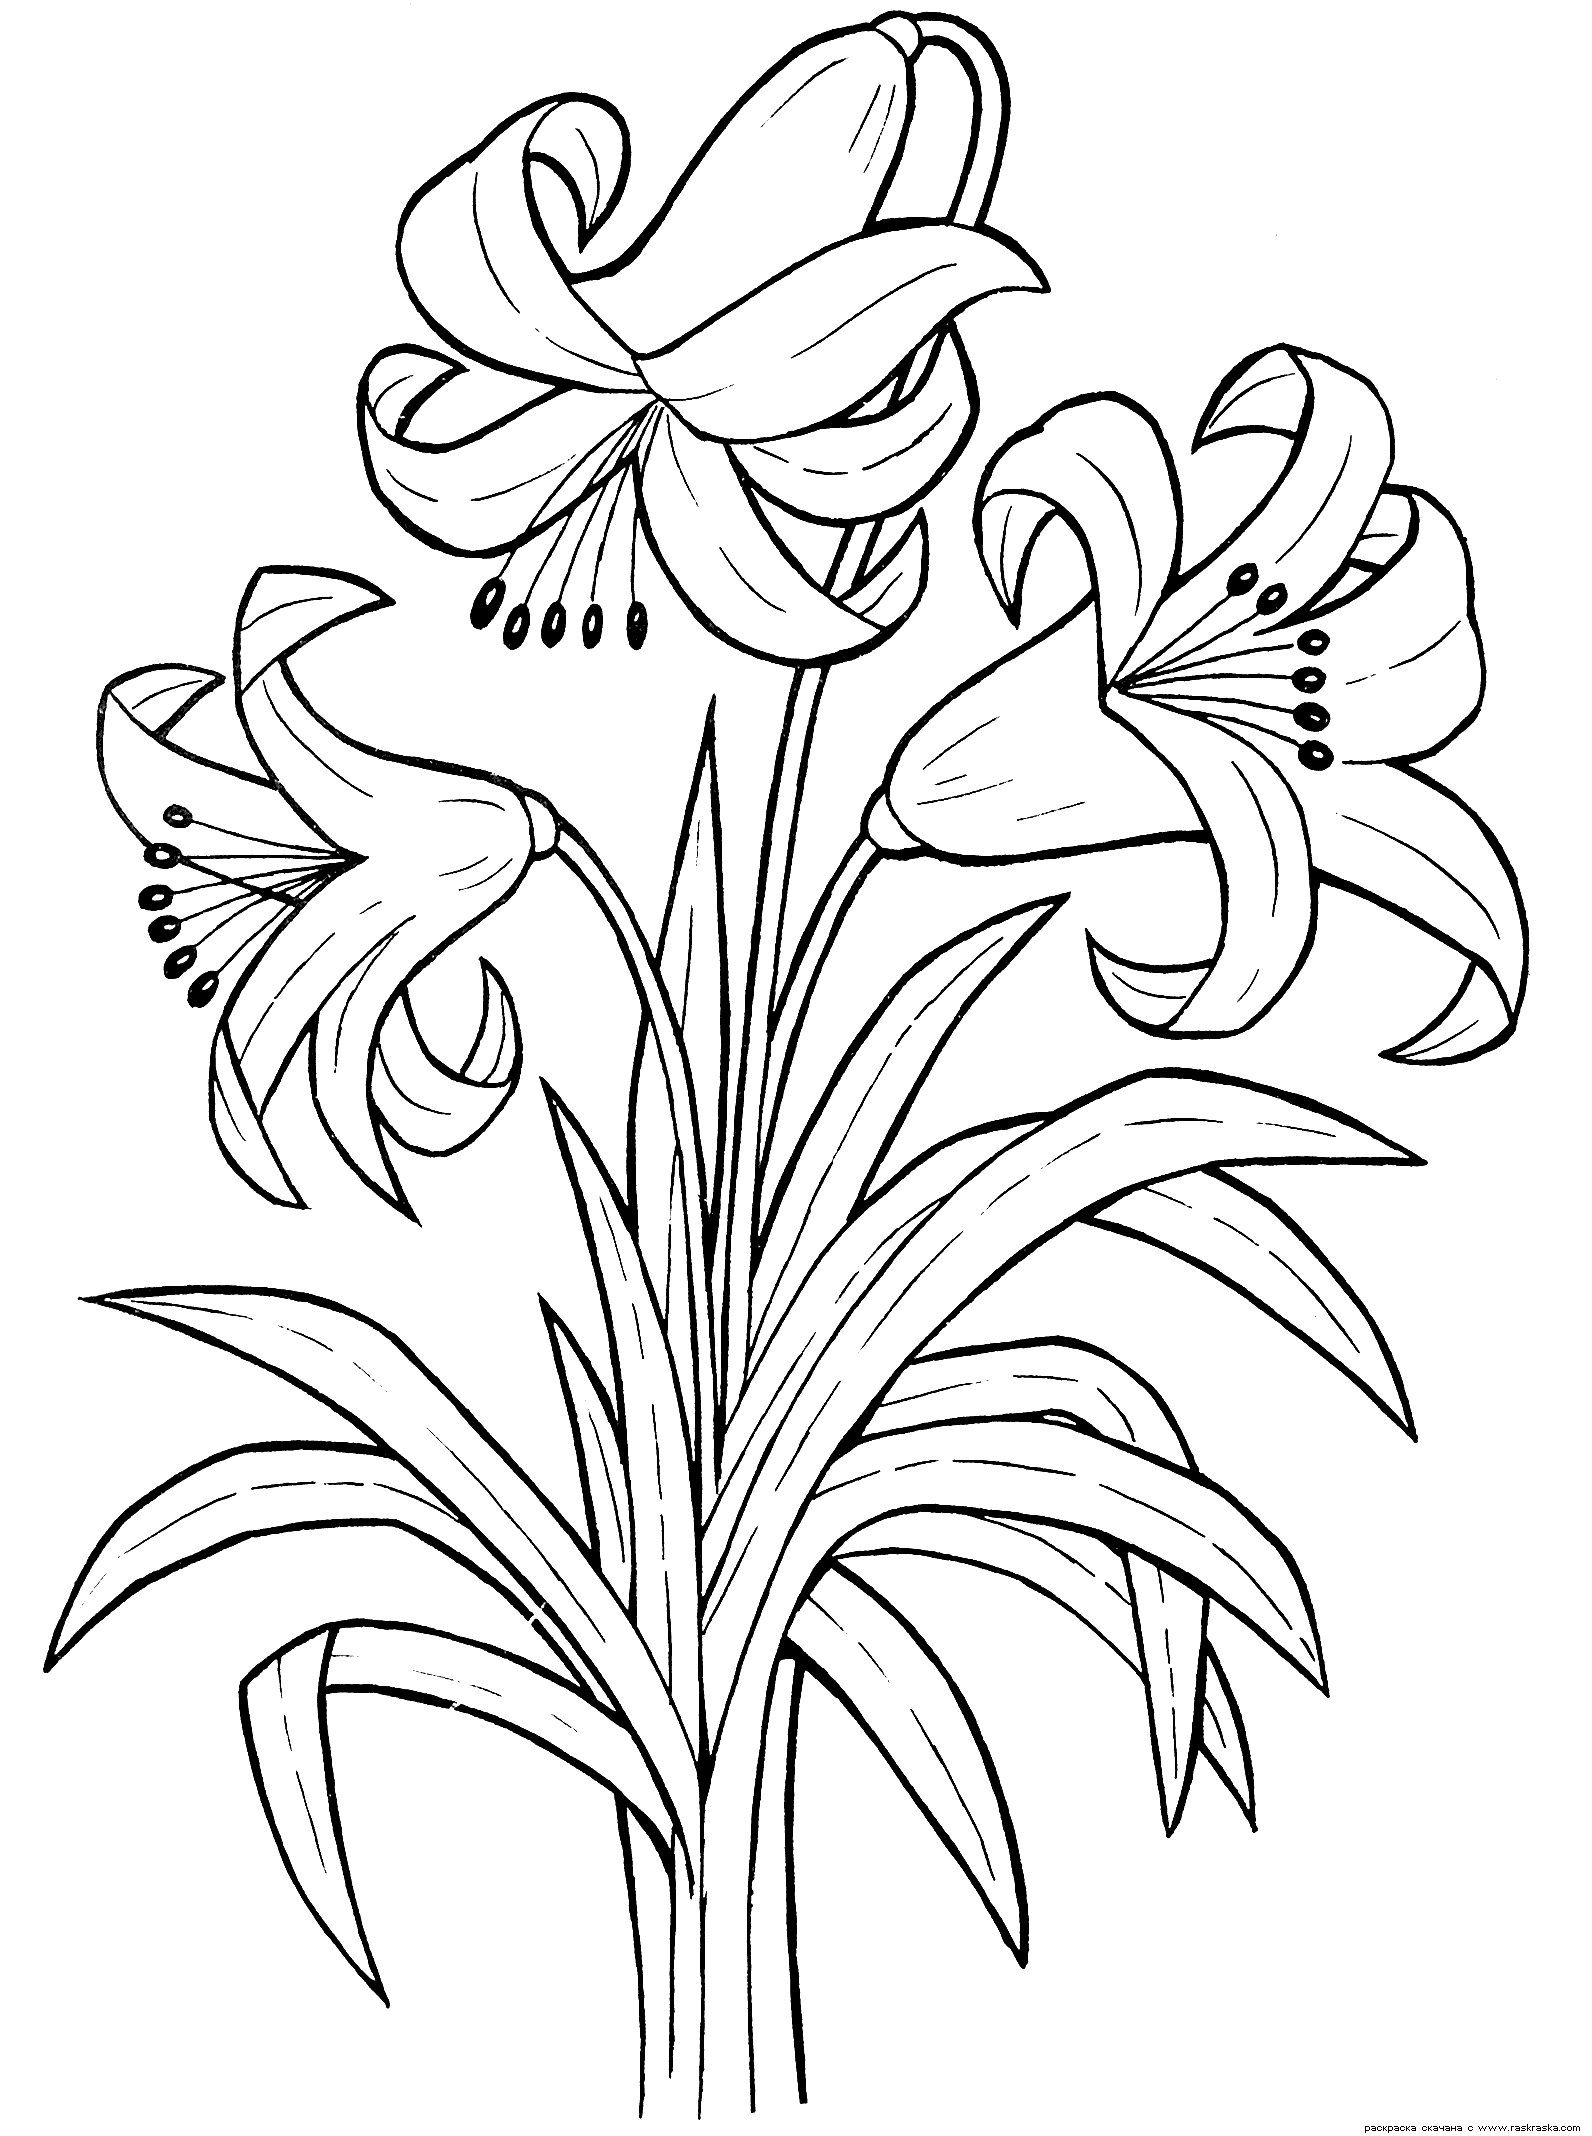 Raskraski Cvetov Rastenij Prirody Dlya Detej Raspechatat Stranica 6 Printable Flower Coloring Pages Flower Coloring Pages Flower Printable